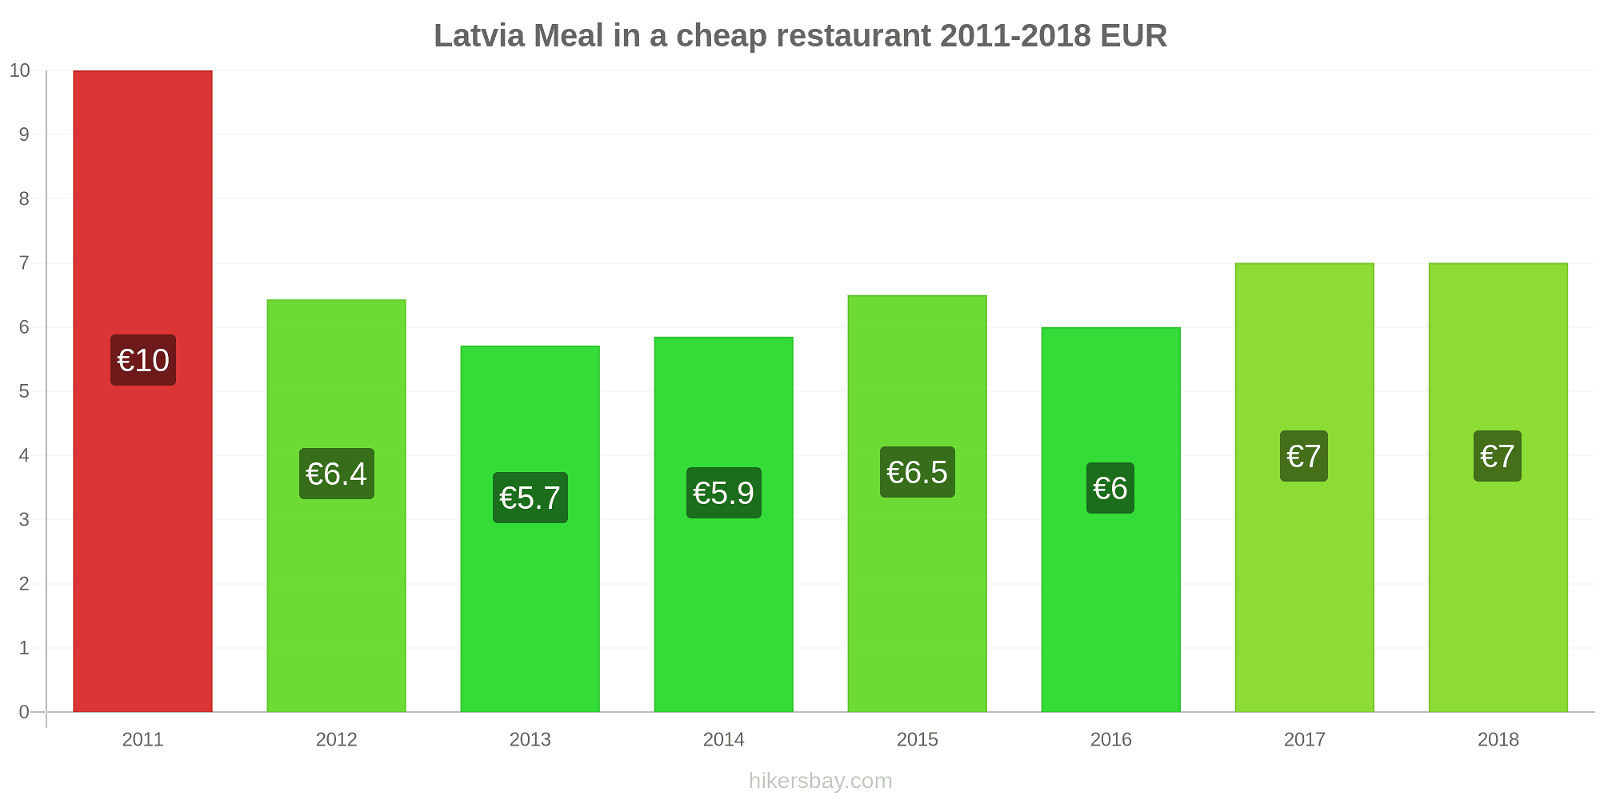 Latvia price changes Meal in a cheap restaurant hikersbay.com